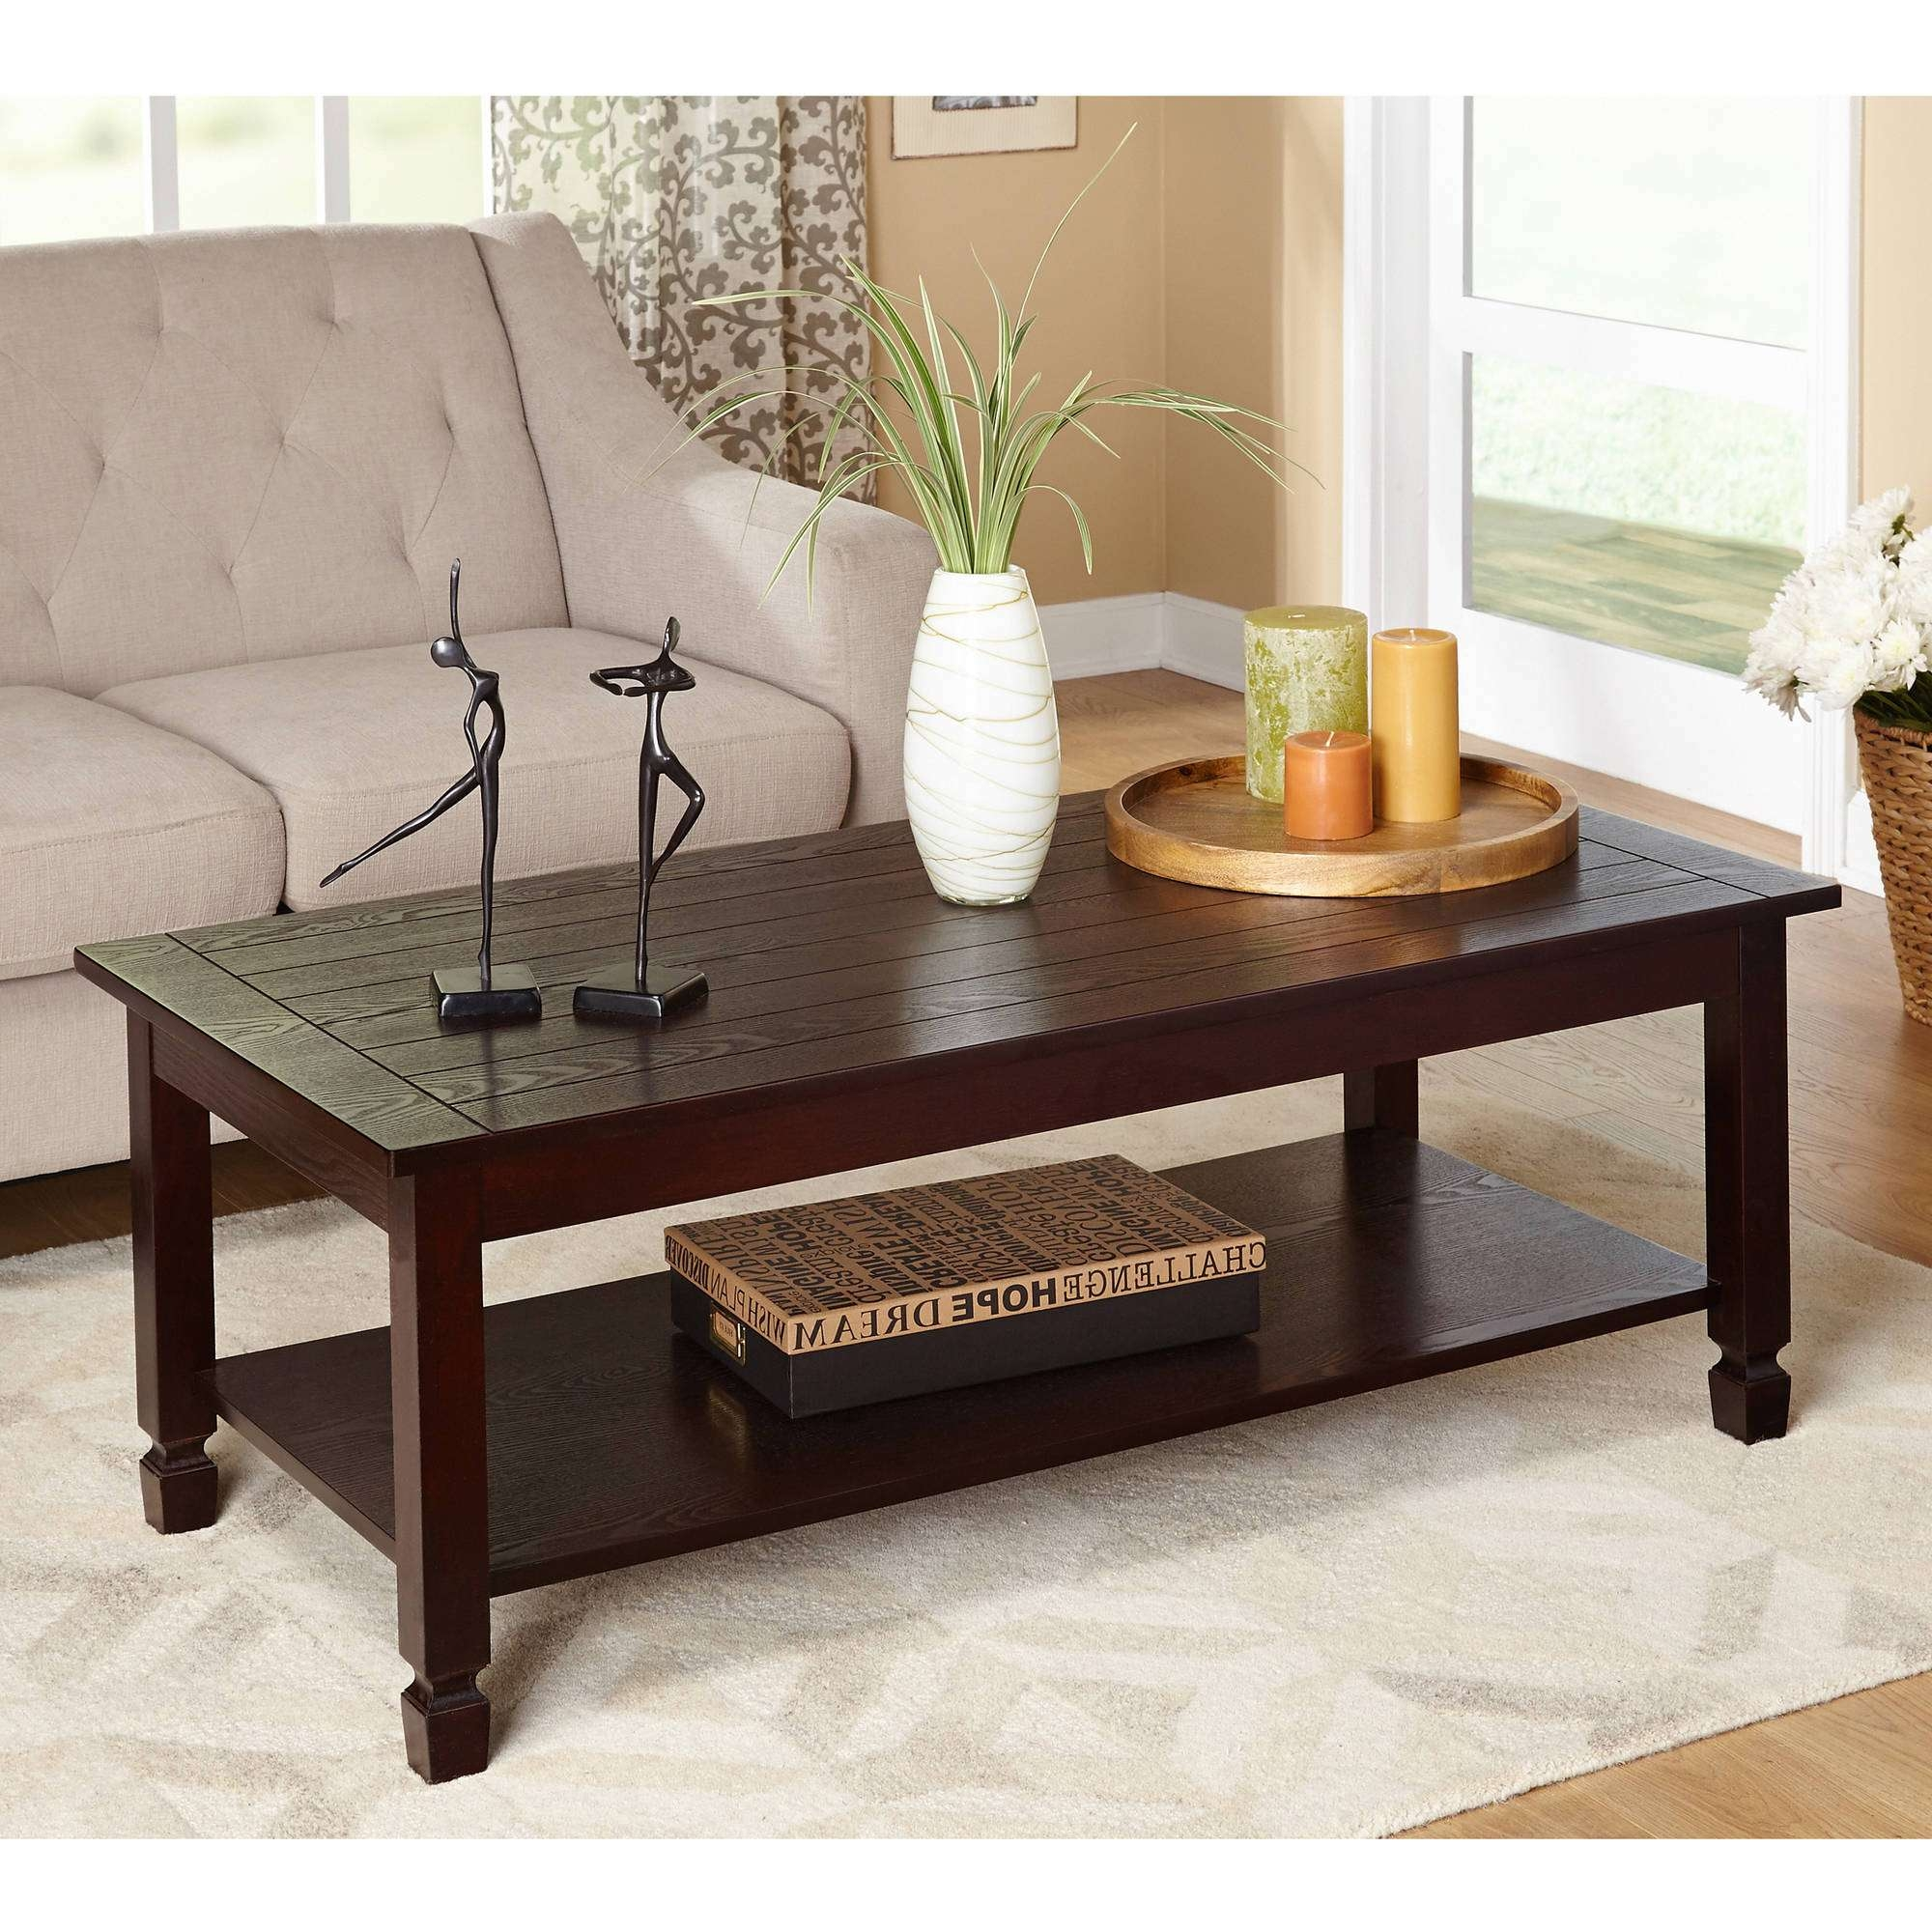 Zenith Cocktail Table, Espresso – Walmart Within Fashionable Espresso Coffee Tables (Gallery 6 of 20)